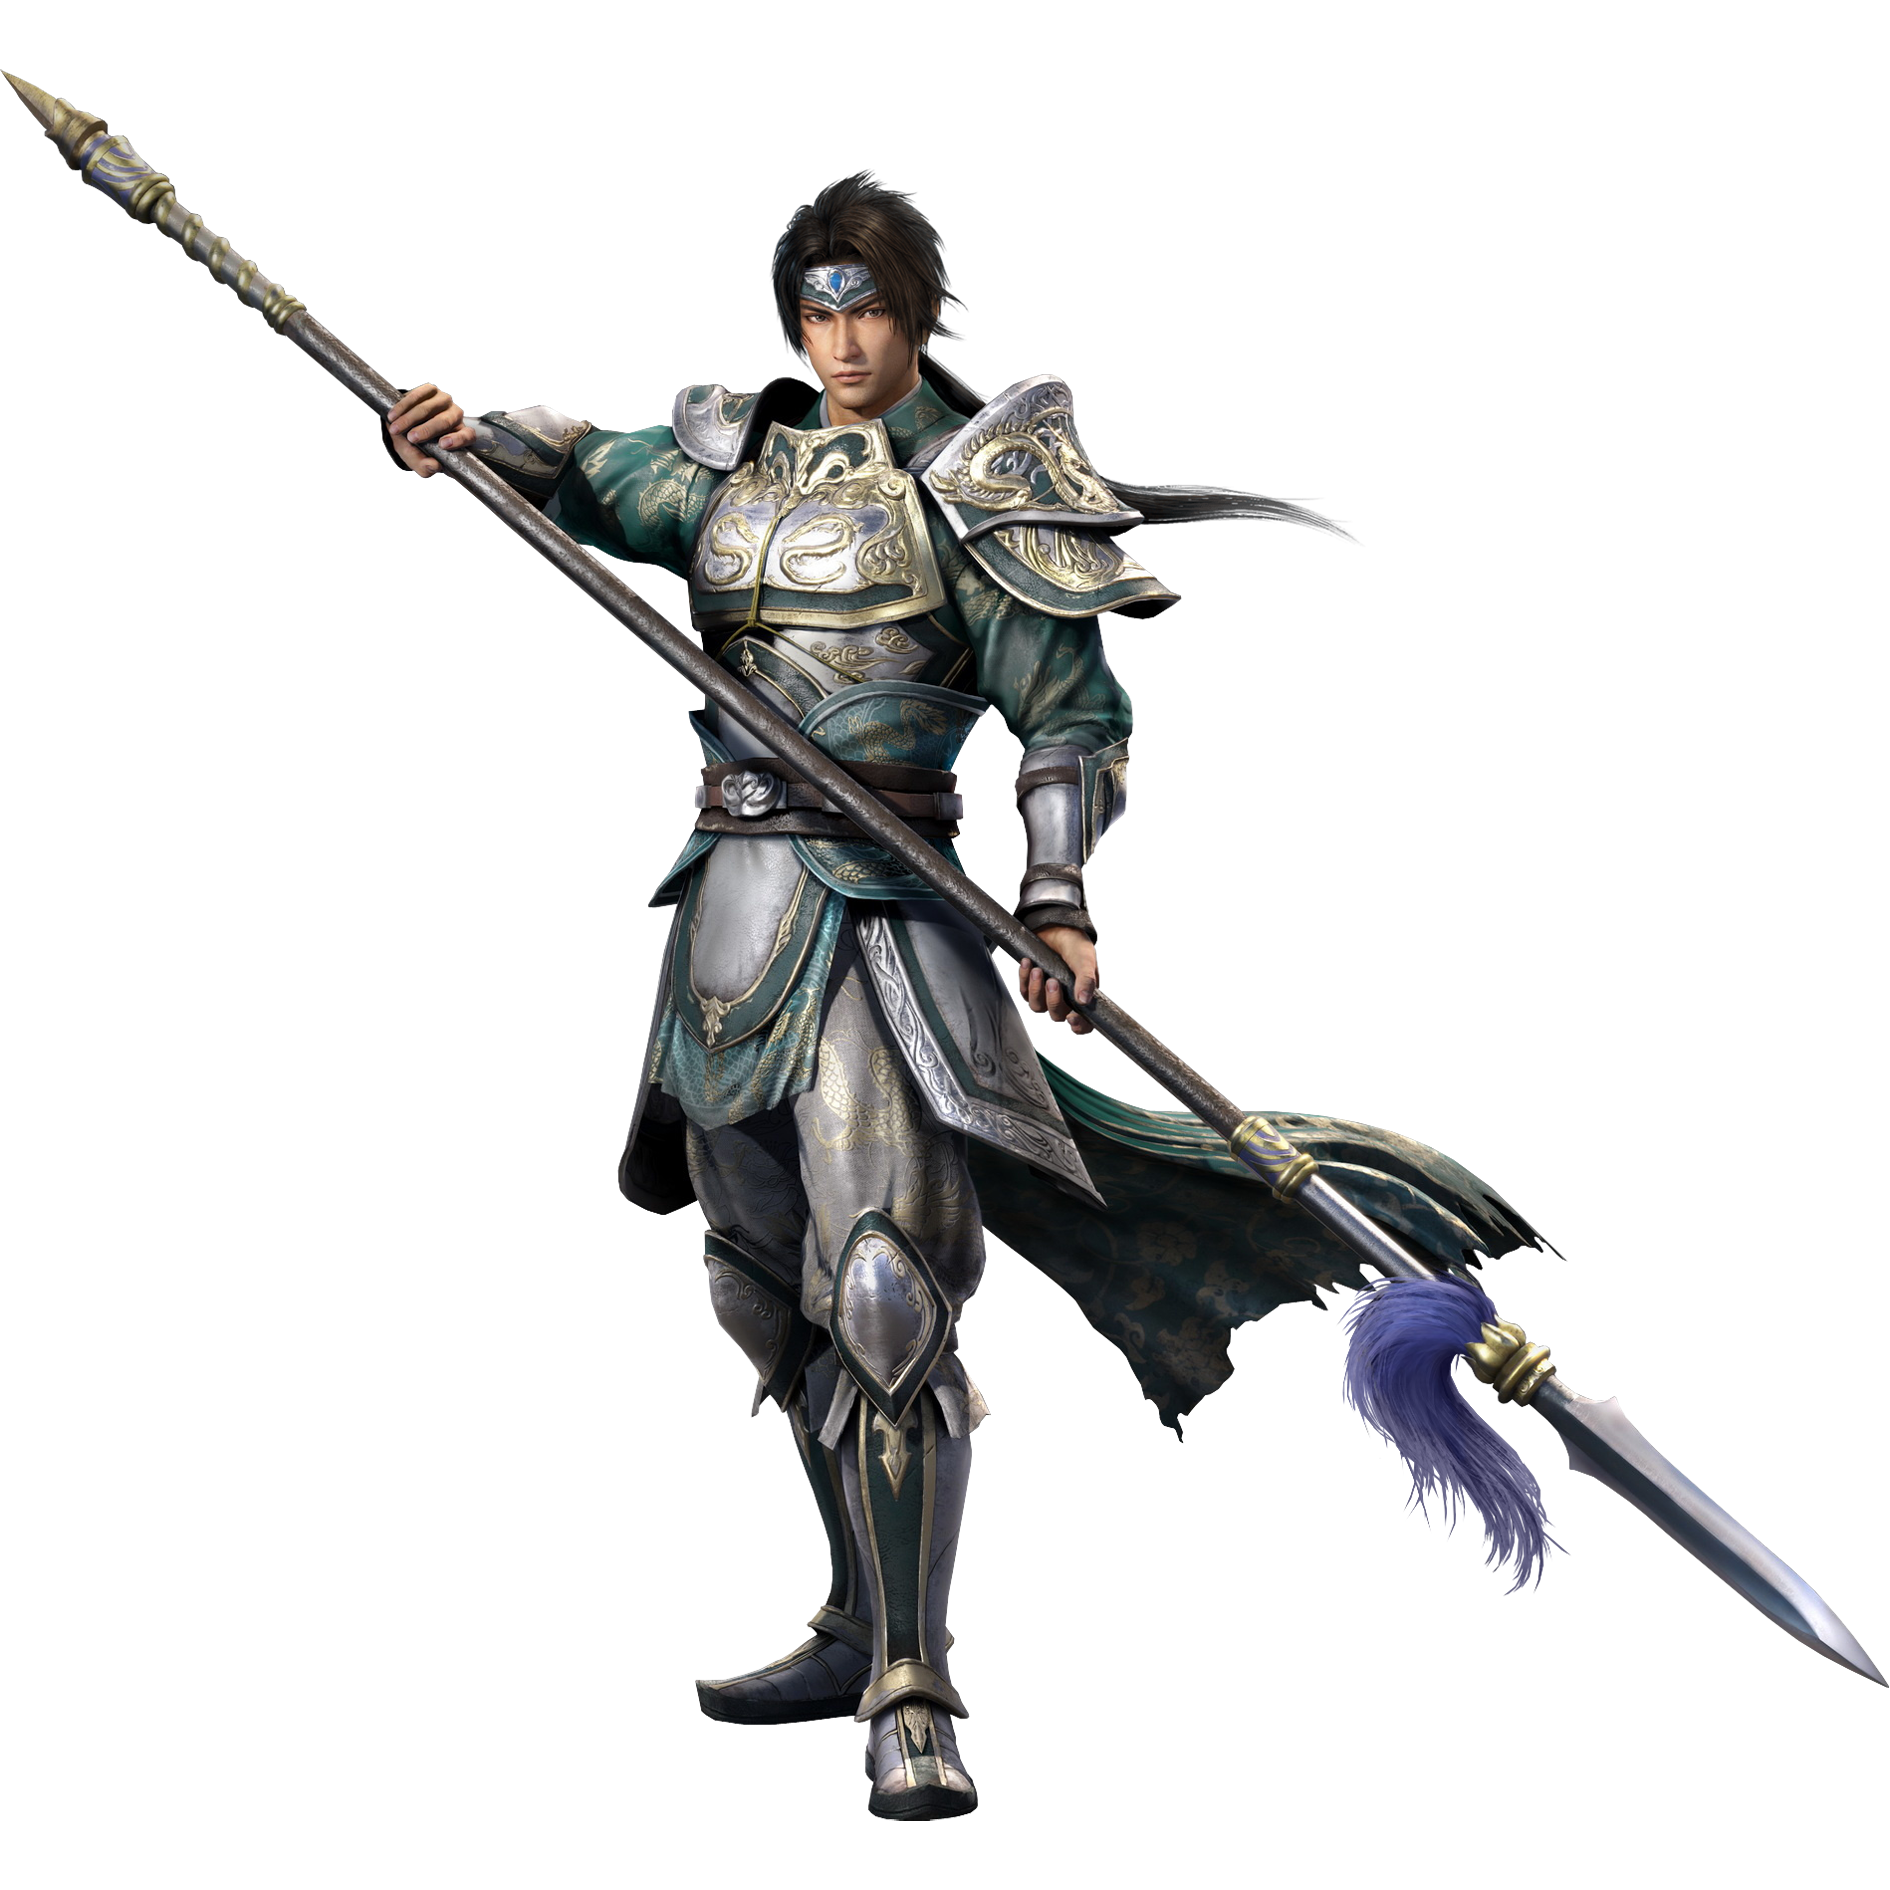 Warrior spear png. Image zhao yun dw